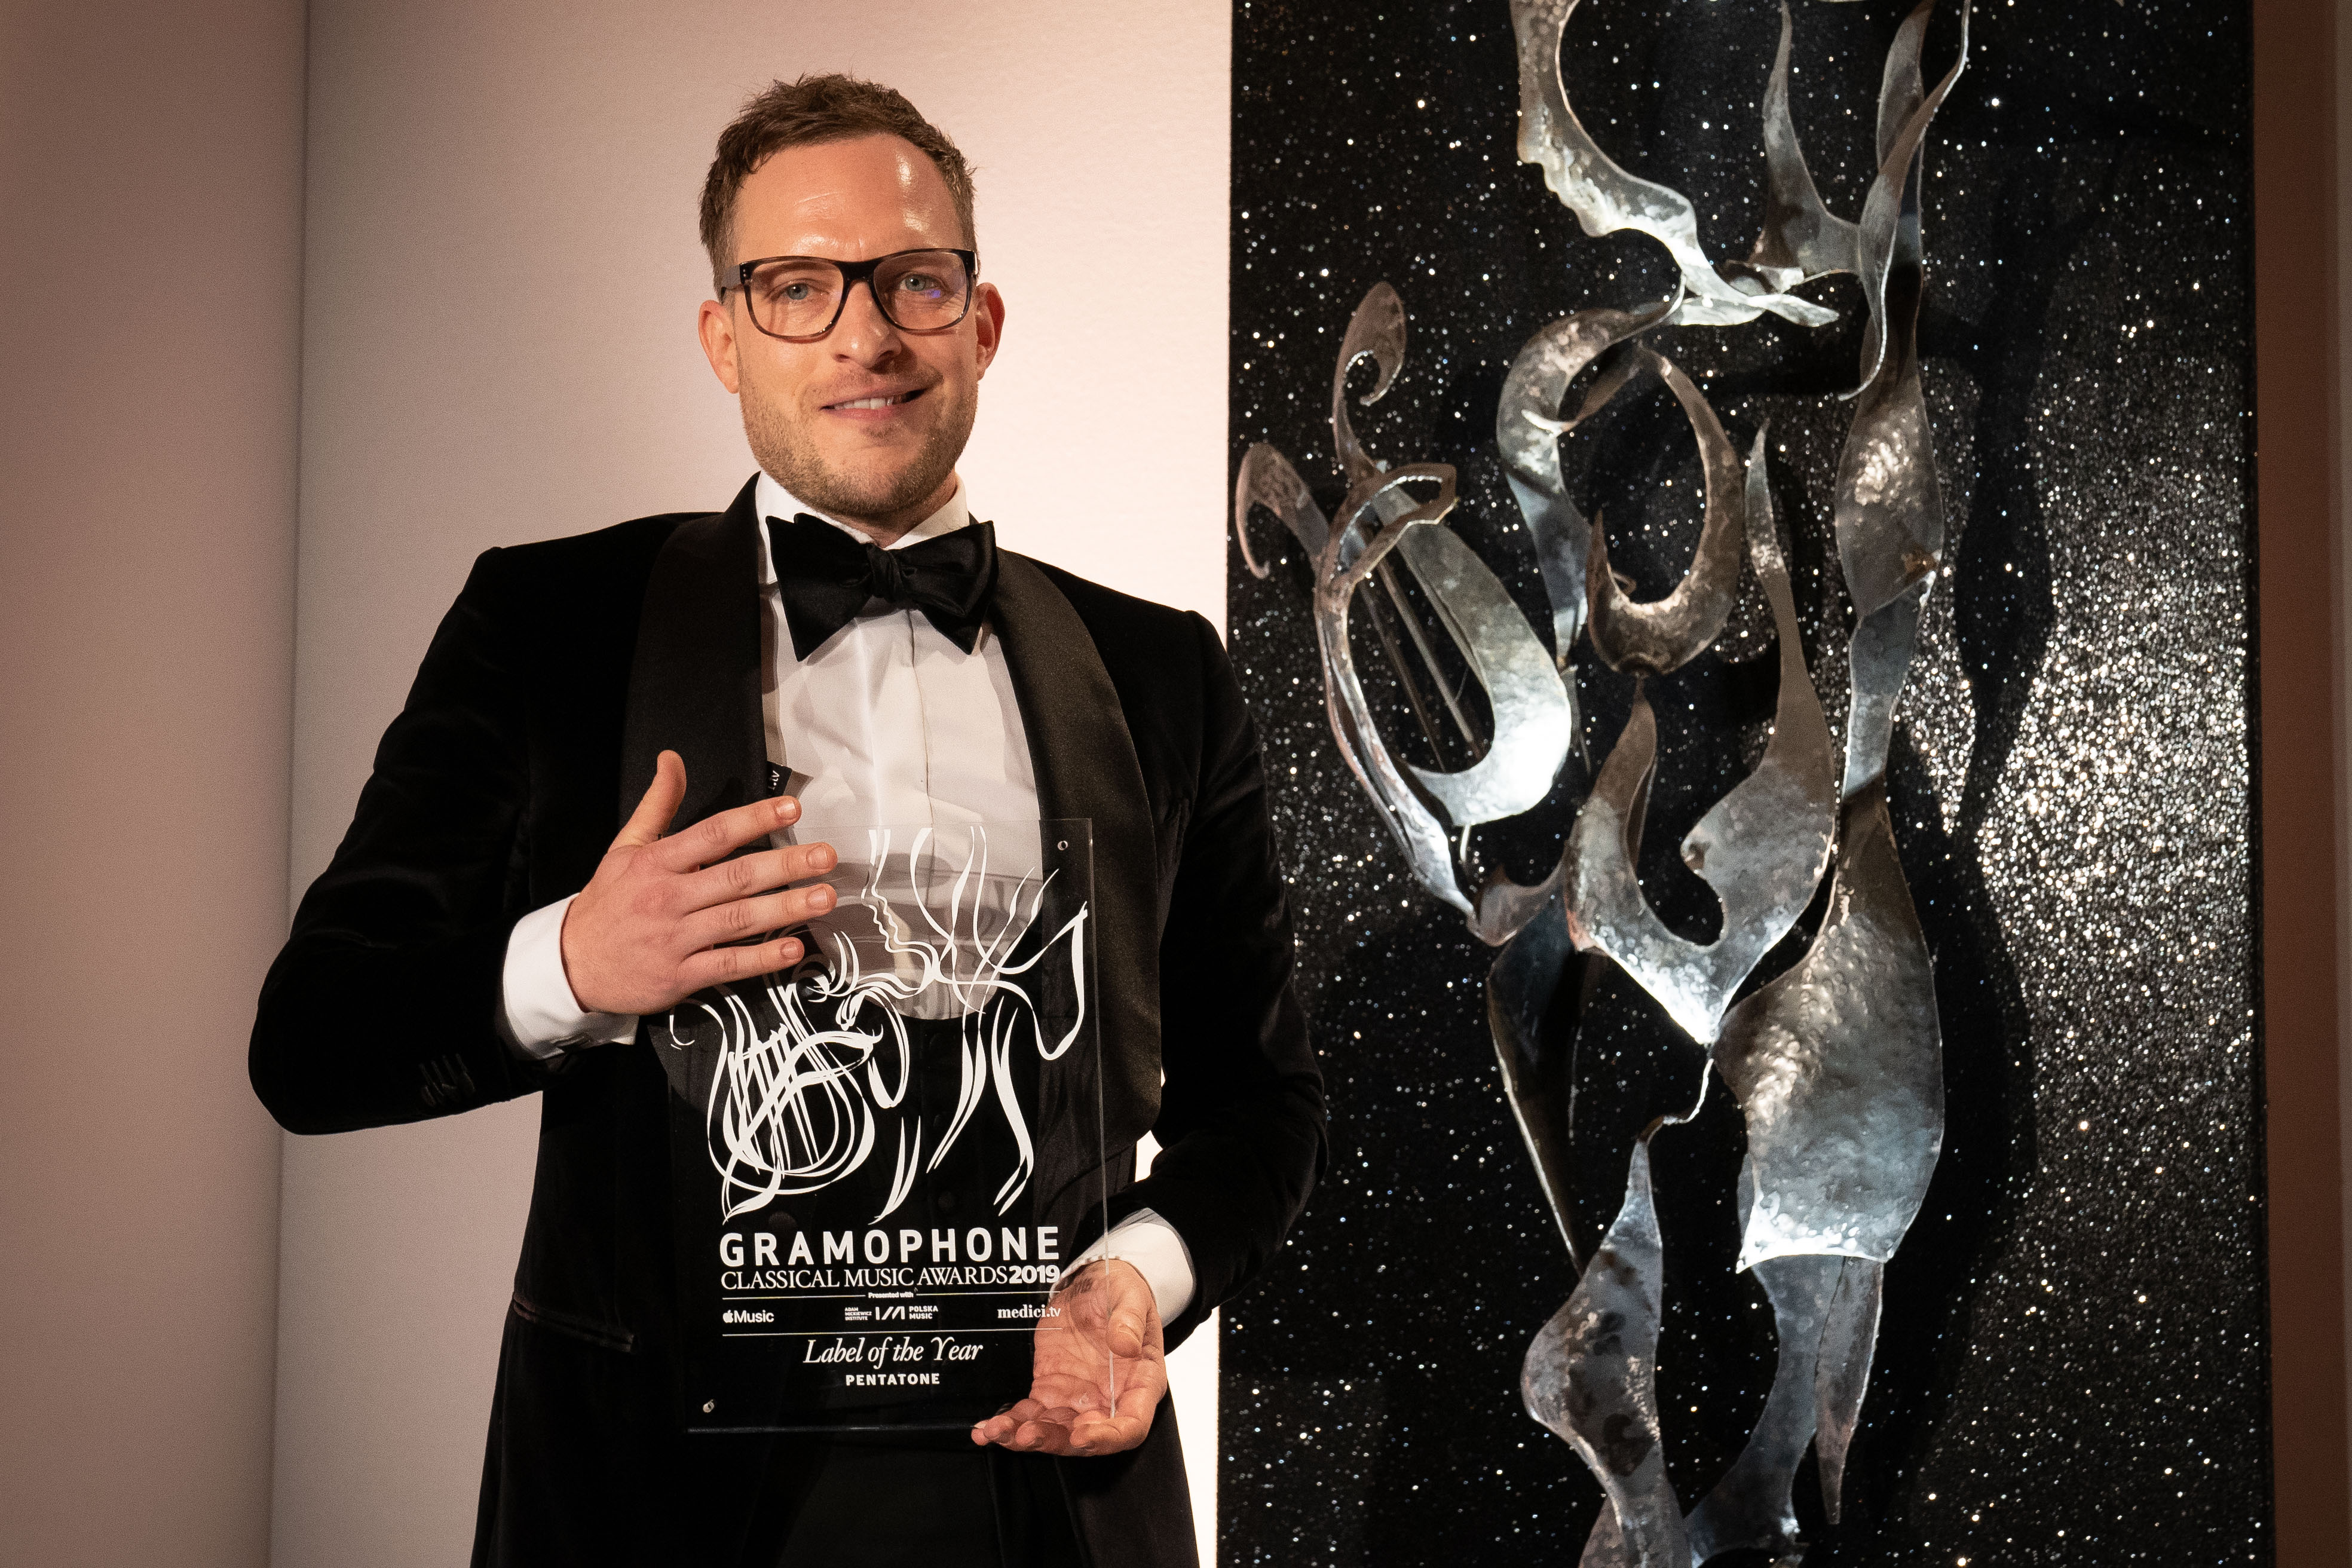 Pentatone's Managing Director, Simon Eder, collects the Label of the Year Award